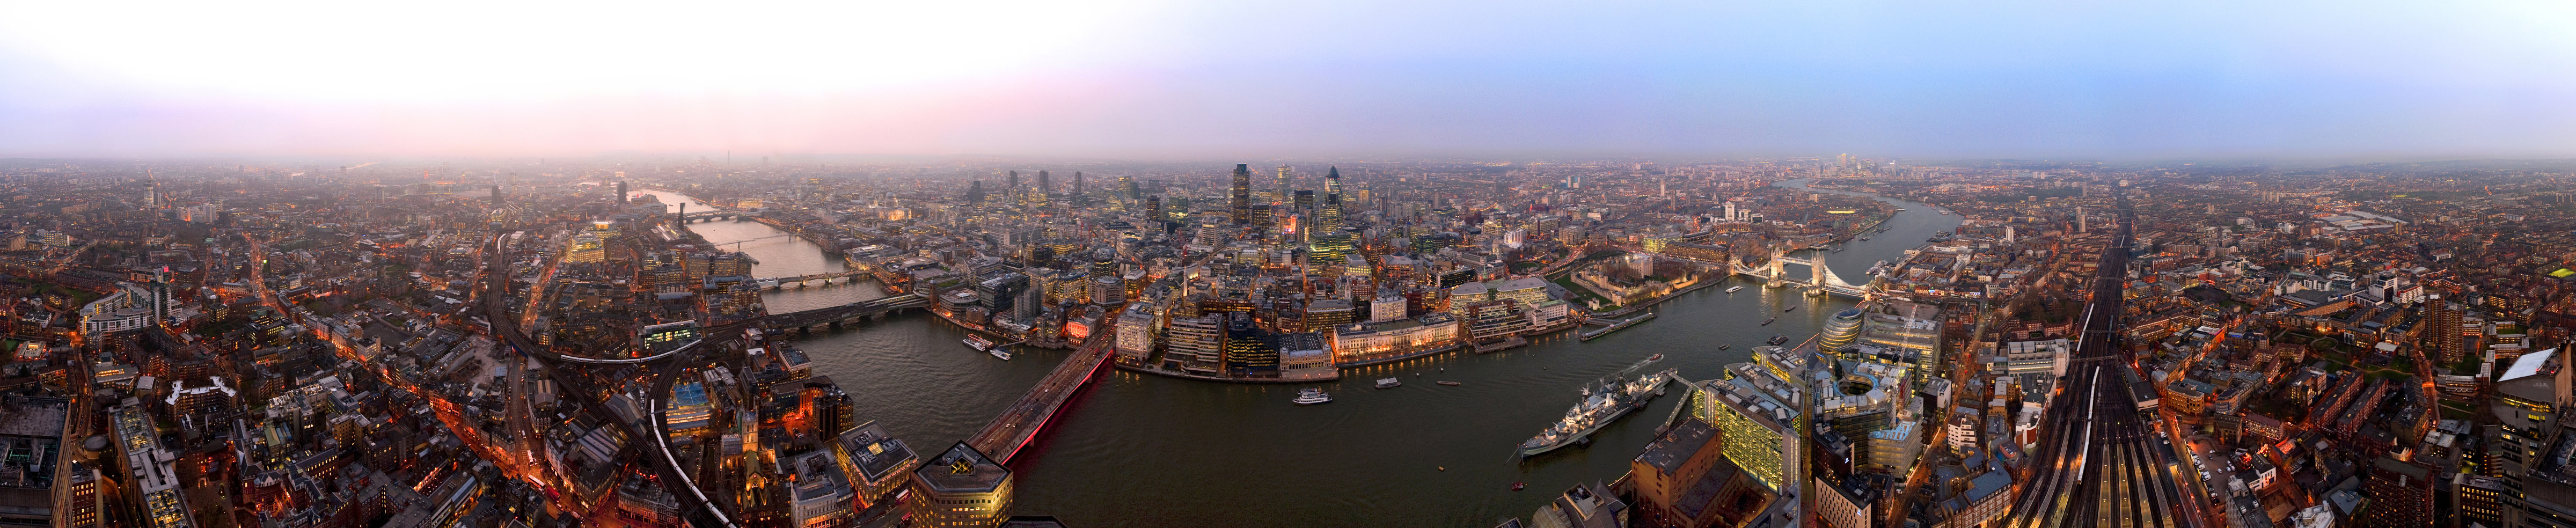 Panorama from the Shard